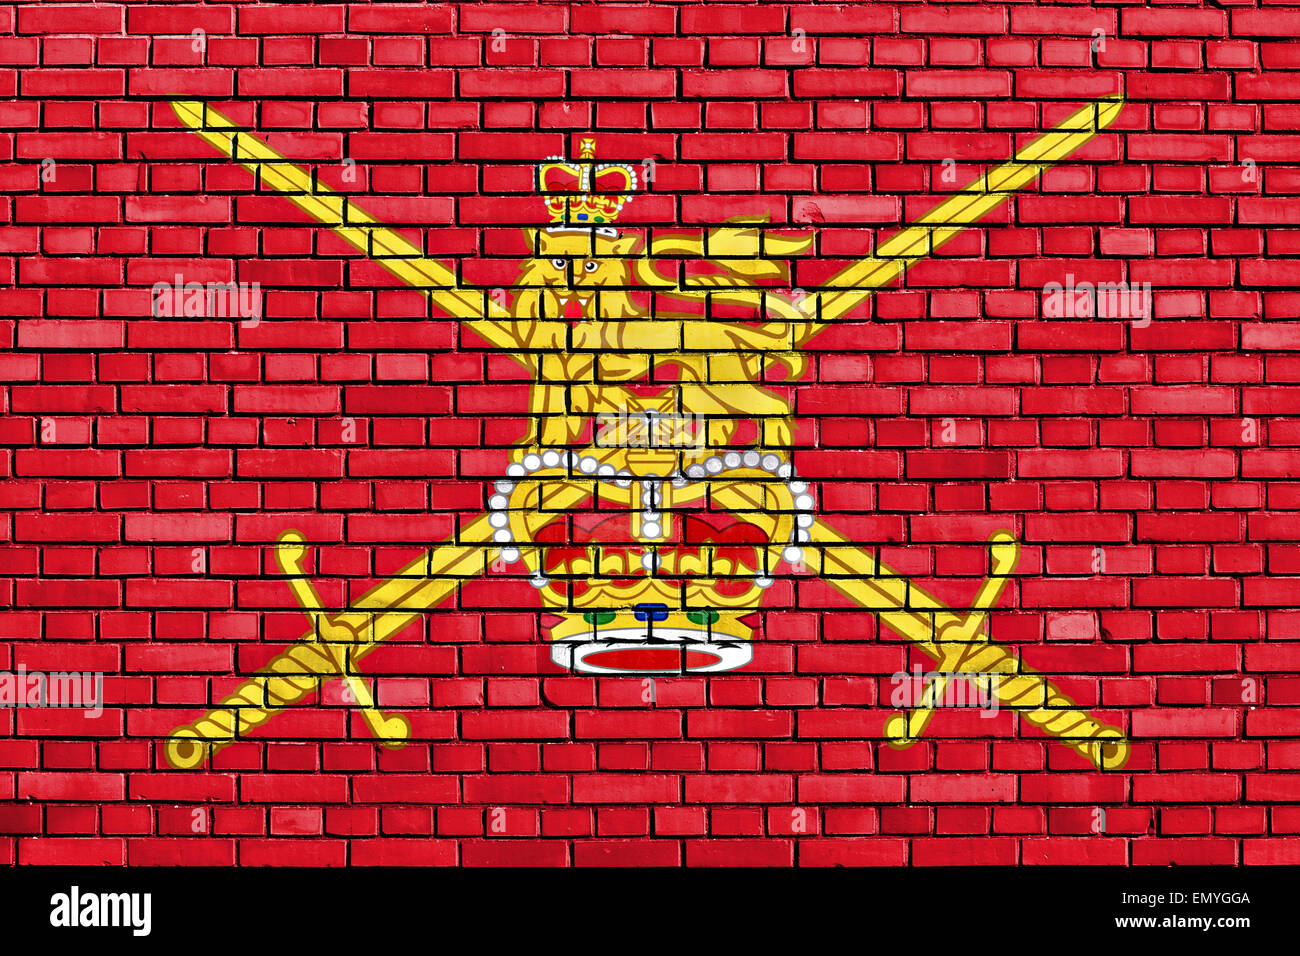 flag of British Army painted on brick wall - Stock Image